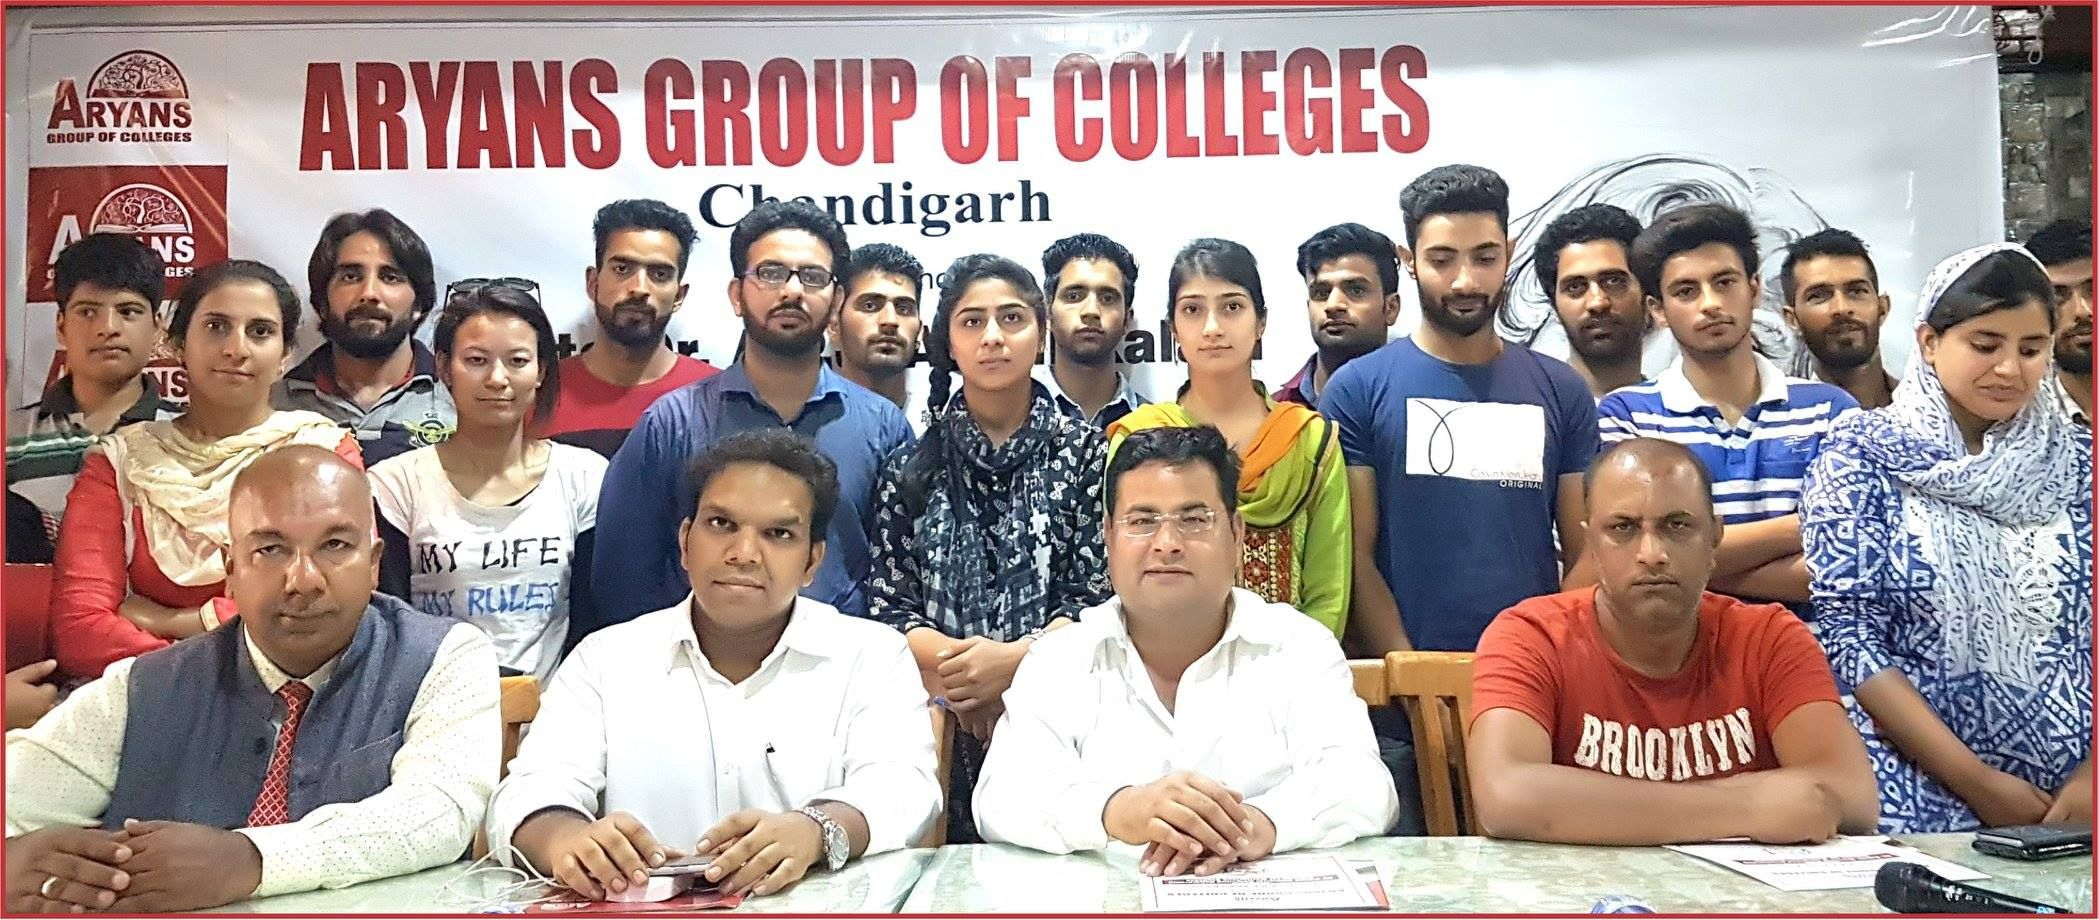 To help and empower the youth of Bihar, today Aryans Group of Colleges, Chandigarh has signed a Memorandum of Understanding (MoU) with Rosemine Edu…